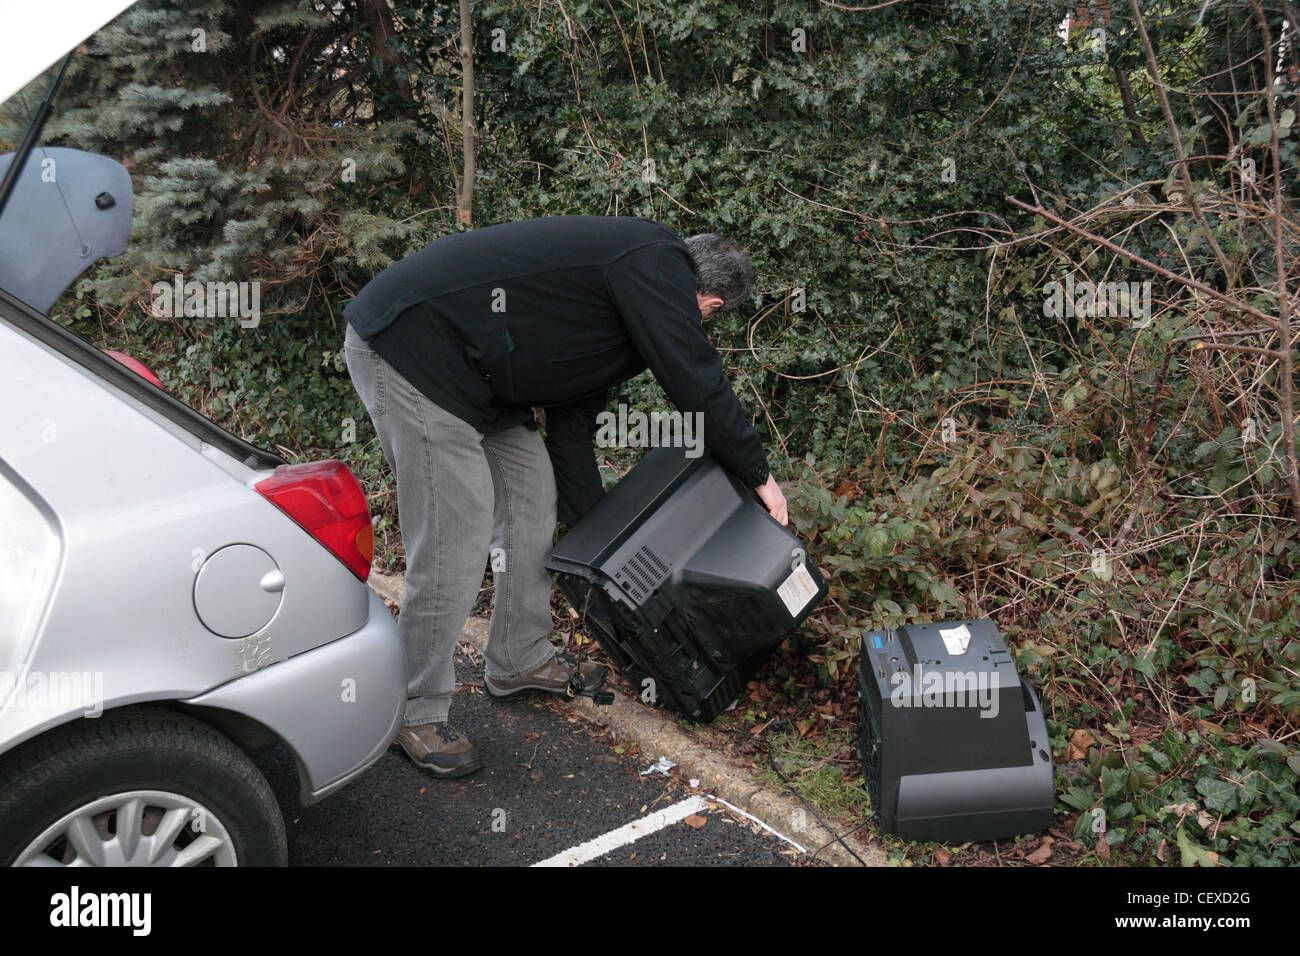 A man illegally dumping (fly tipping) some large items including televisions on the side of a car park. ( Posed). - Stock Image